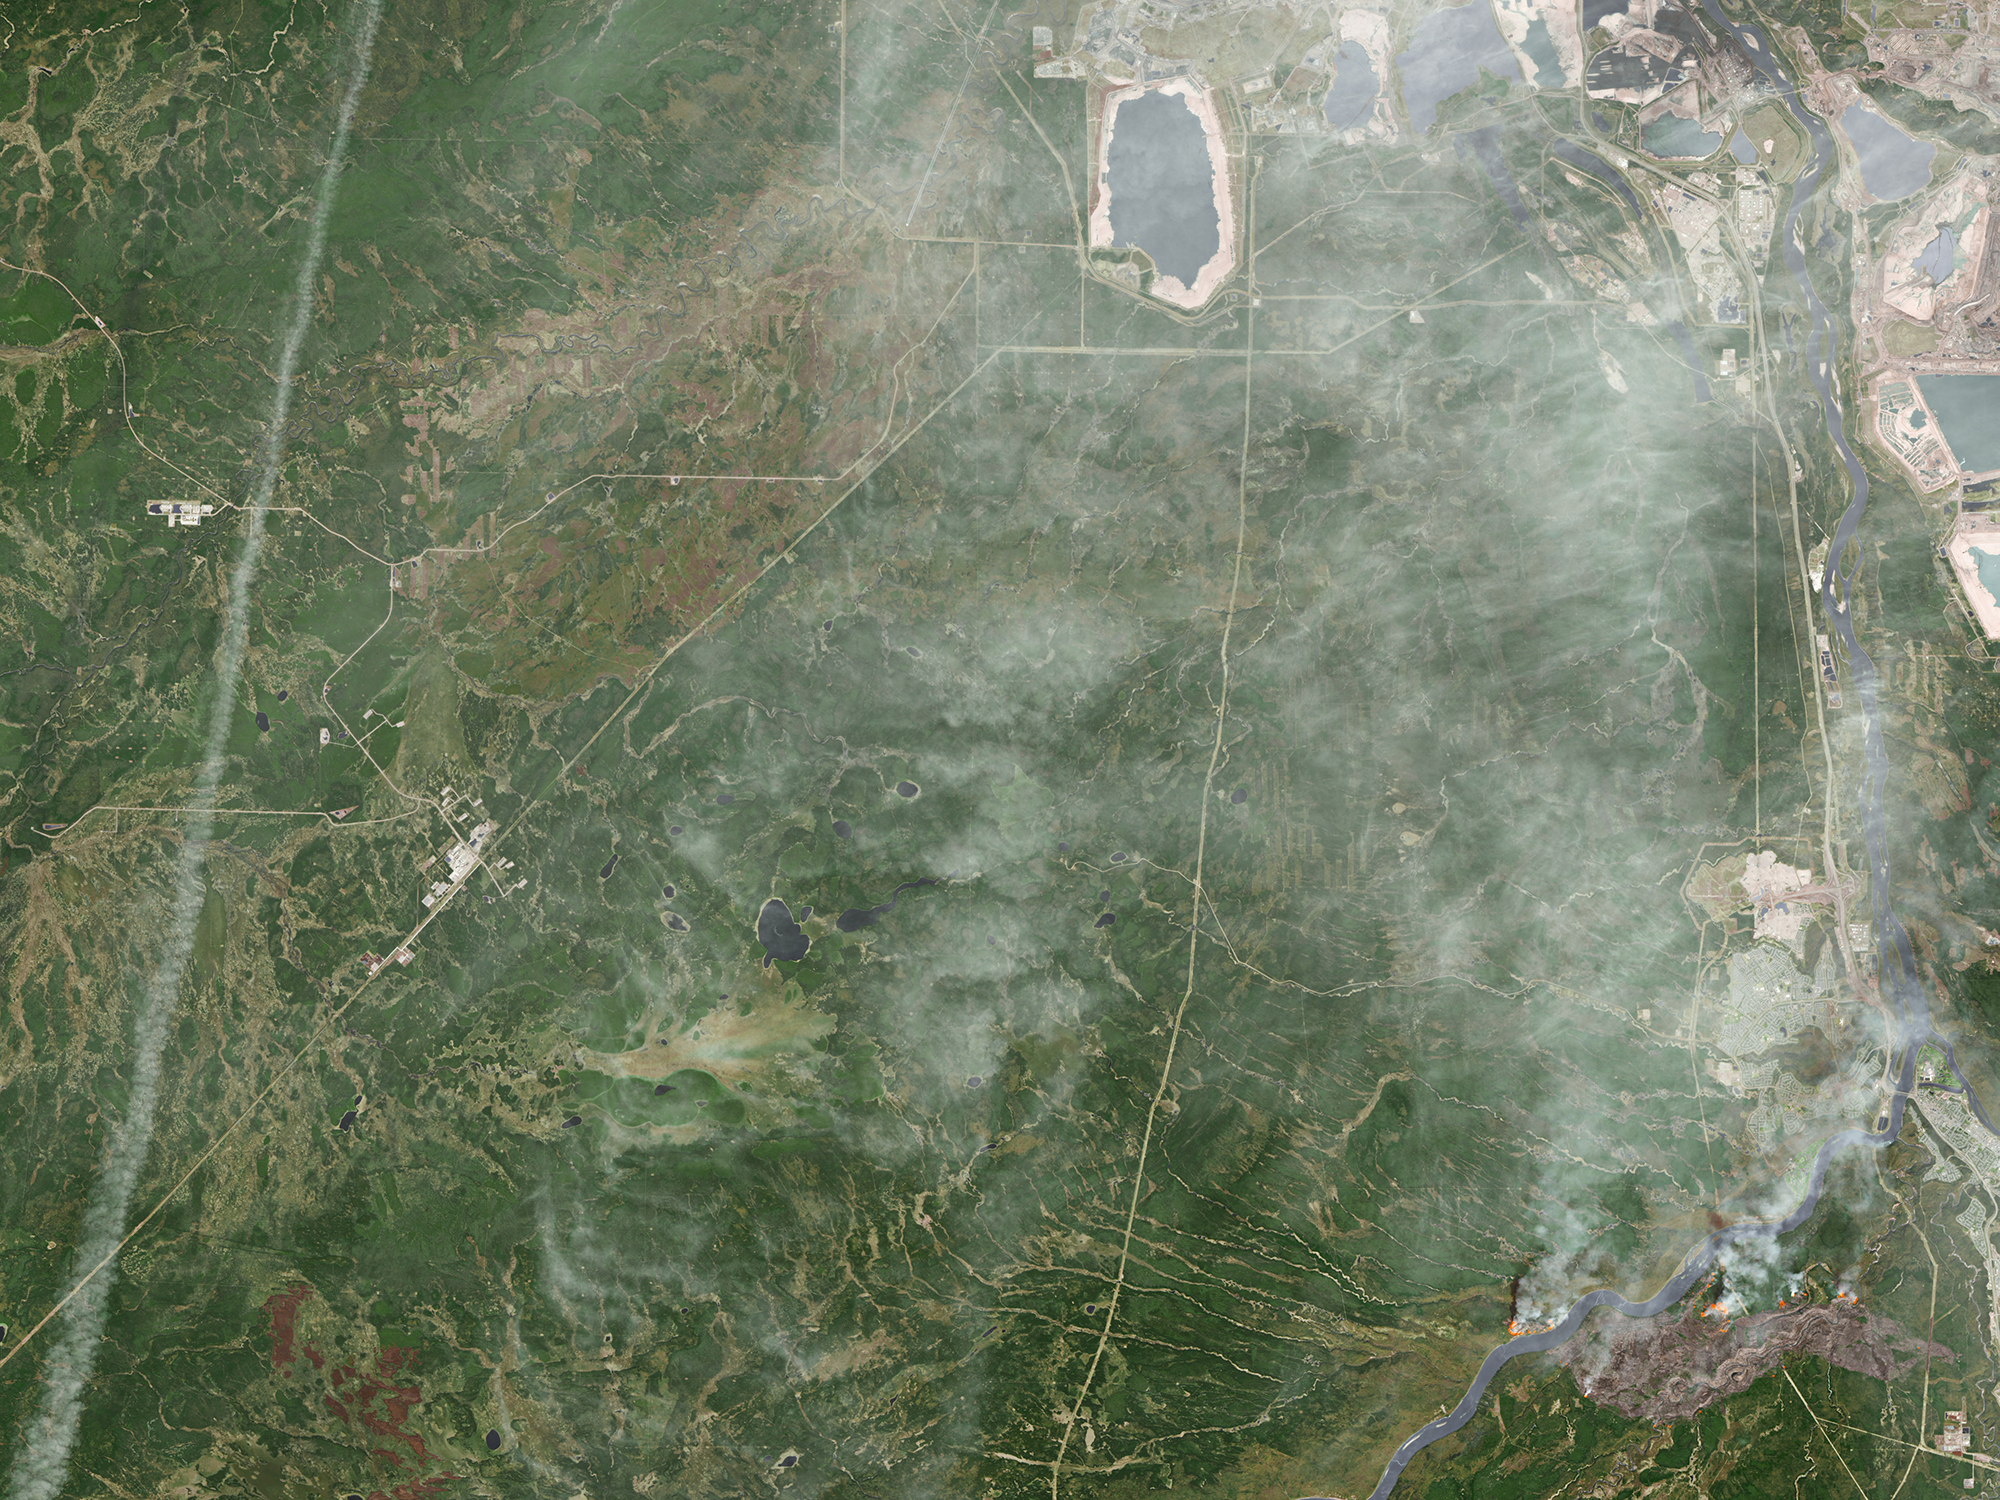 A destructive wildfire burned through Canada's Northern Alberta region, razing neighborhoods in Fort McMurray and displacing tens of thousands of residents. (Source: NASA Earth Observatory)